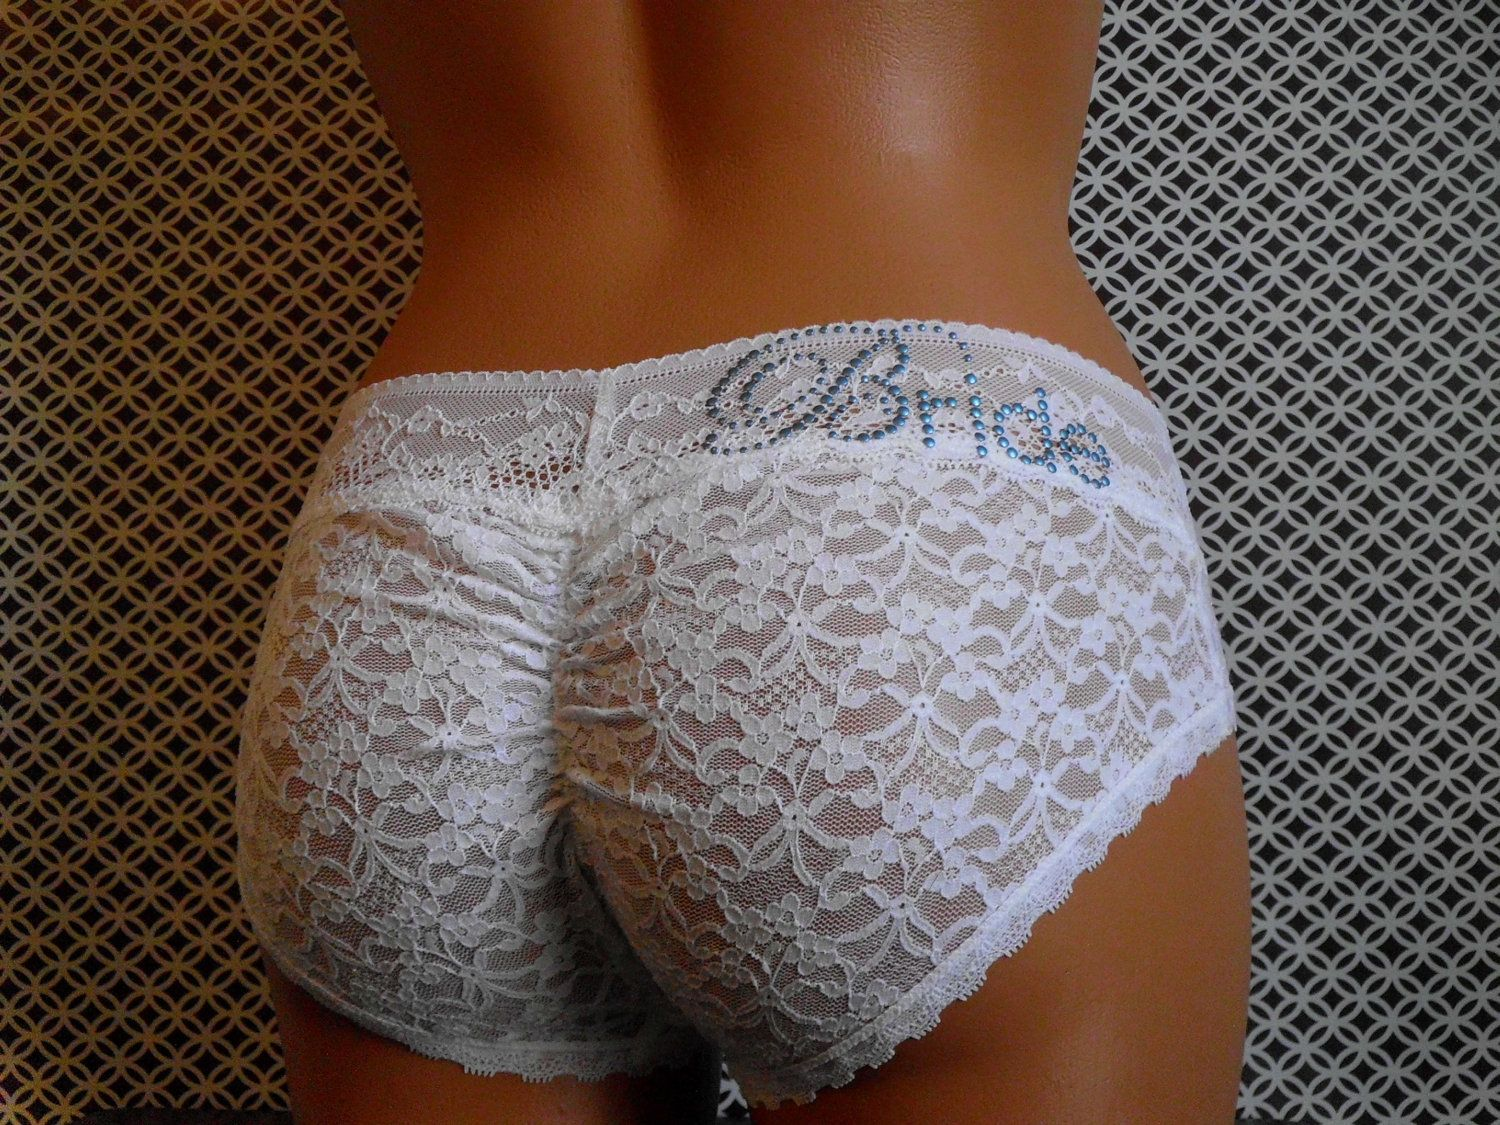 65b28d0a07c8 WHITE Ruched Booty Cheeky Panties w/ Something Blue - Customized ...